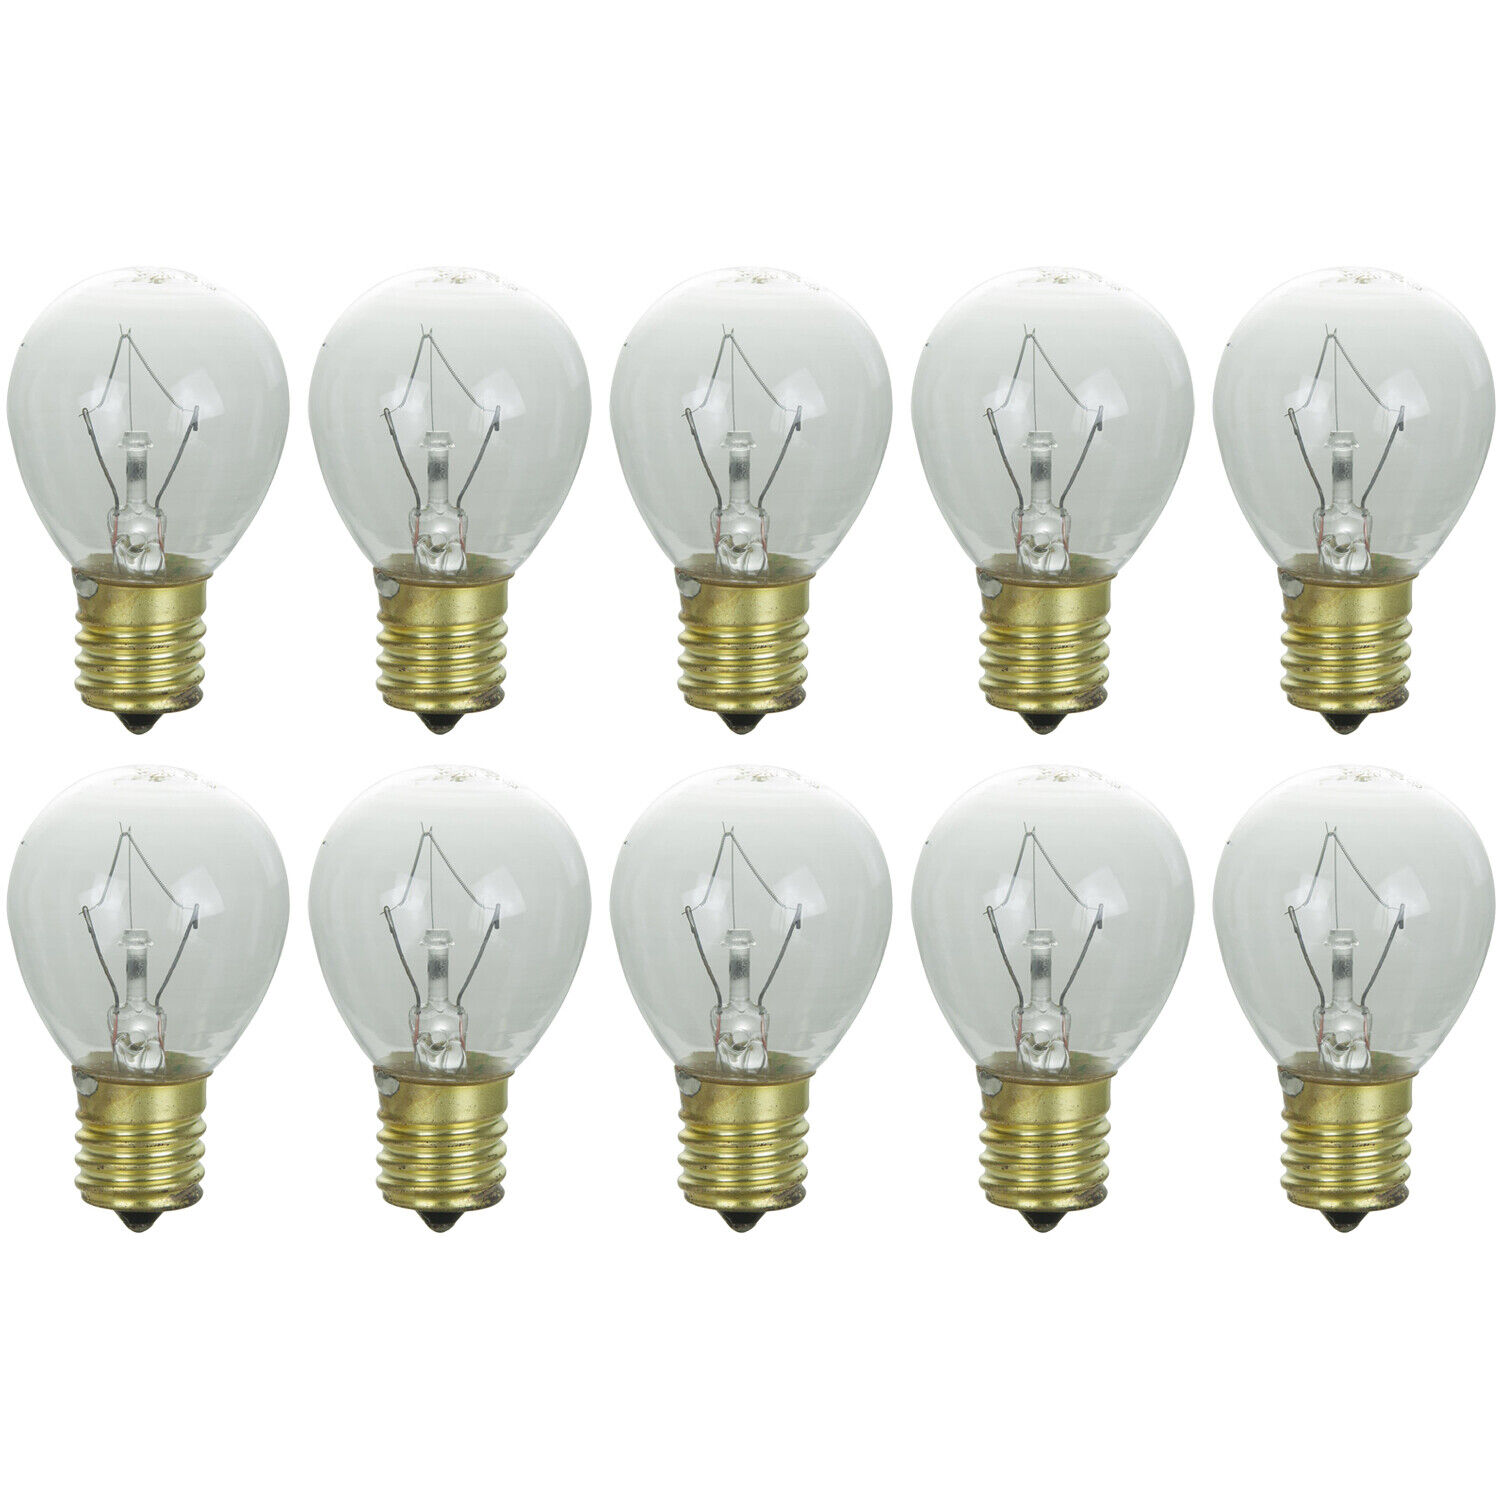 SATCO S3622 10W 120V S11 E17 BASE FROSTED INCANDESCENT FAN BULB PACK OF 10